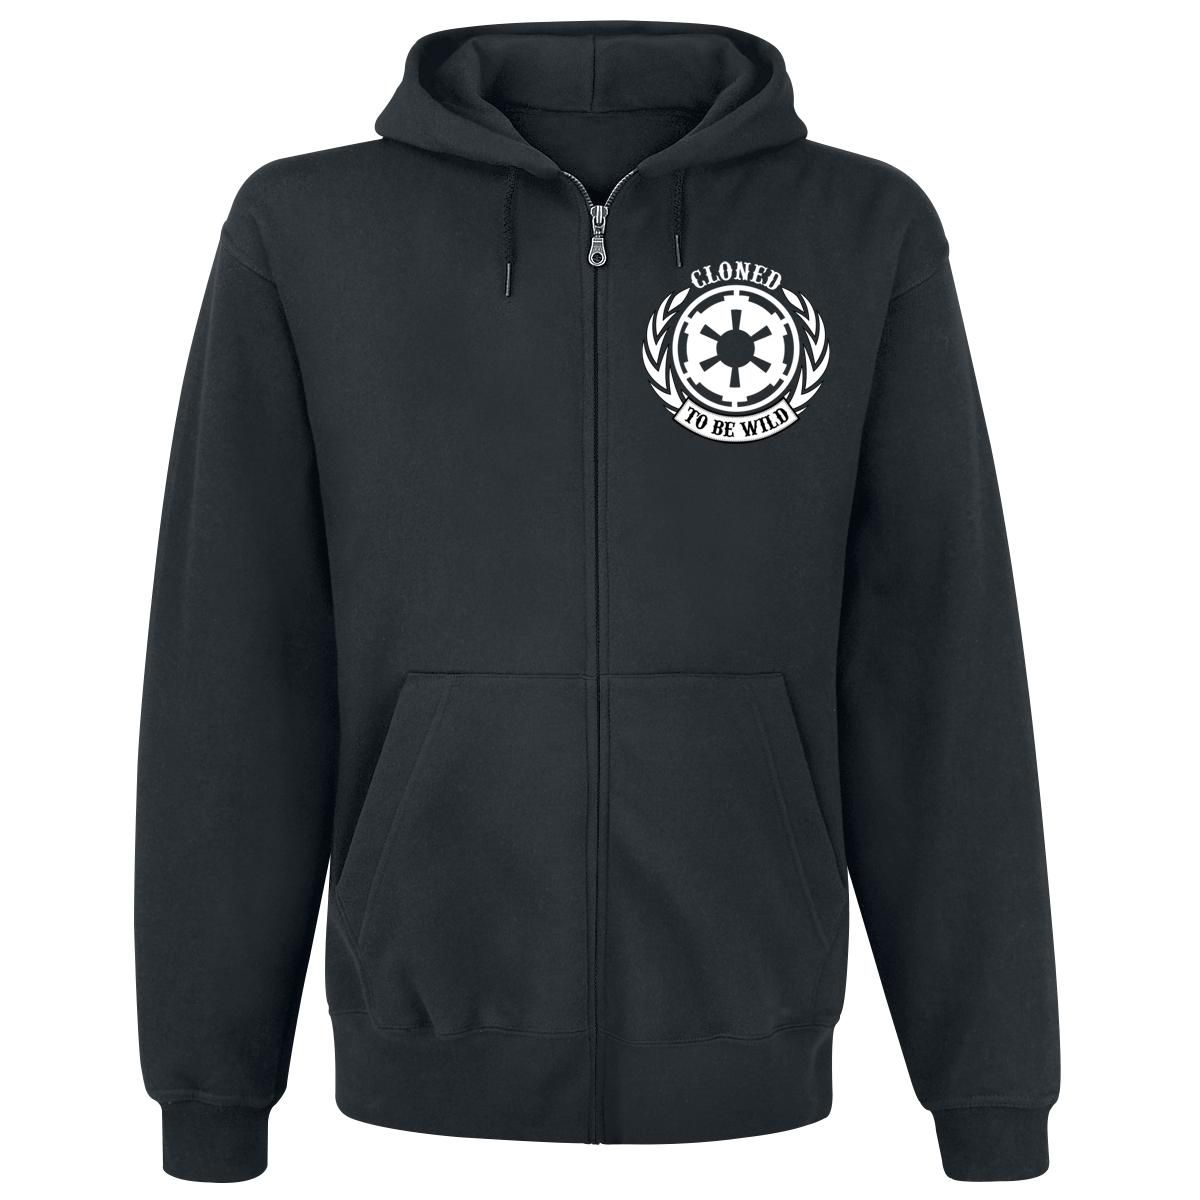 Cloned To Be Wild - Hooded zip by Star Wars